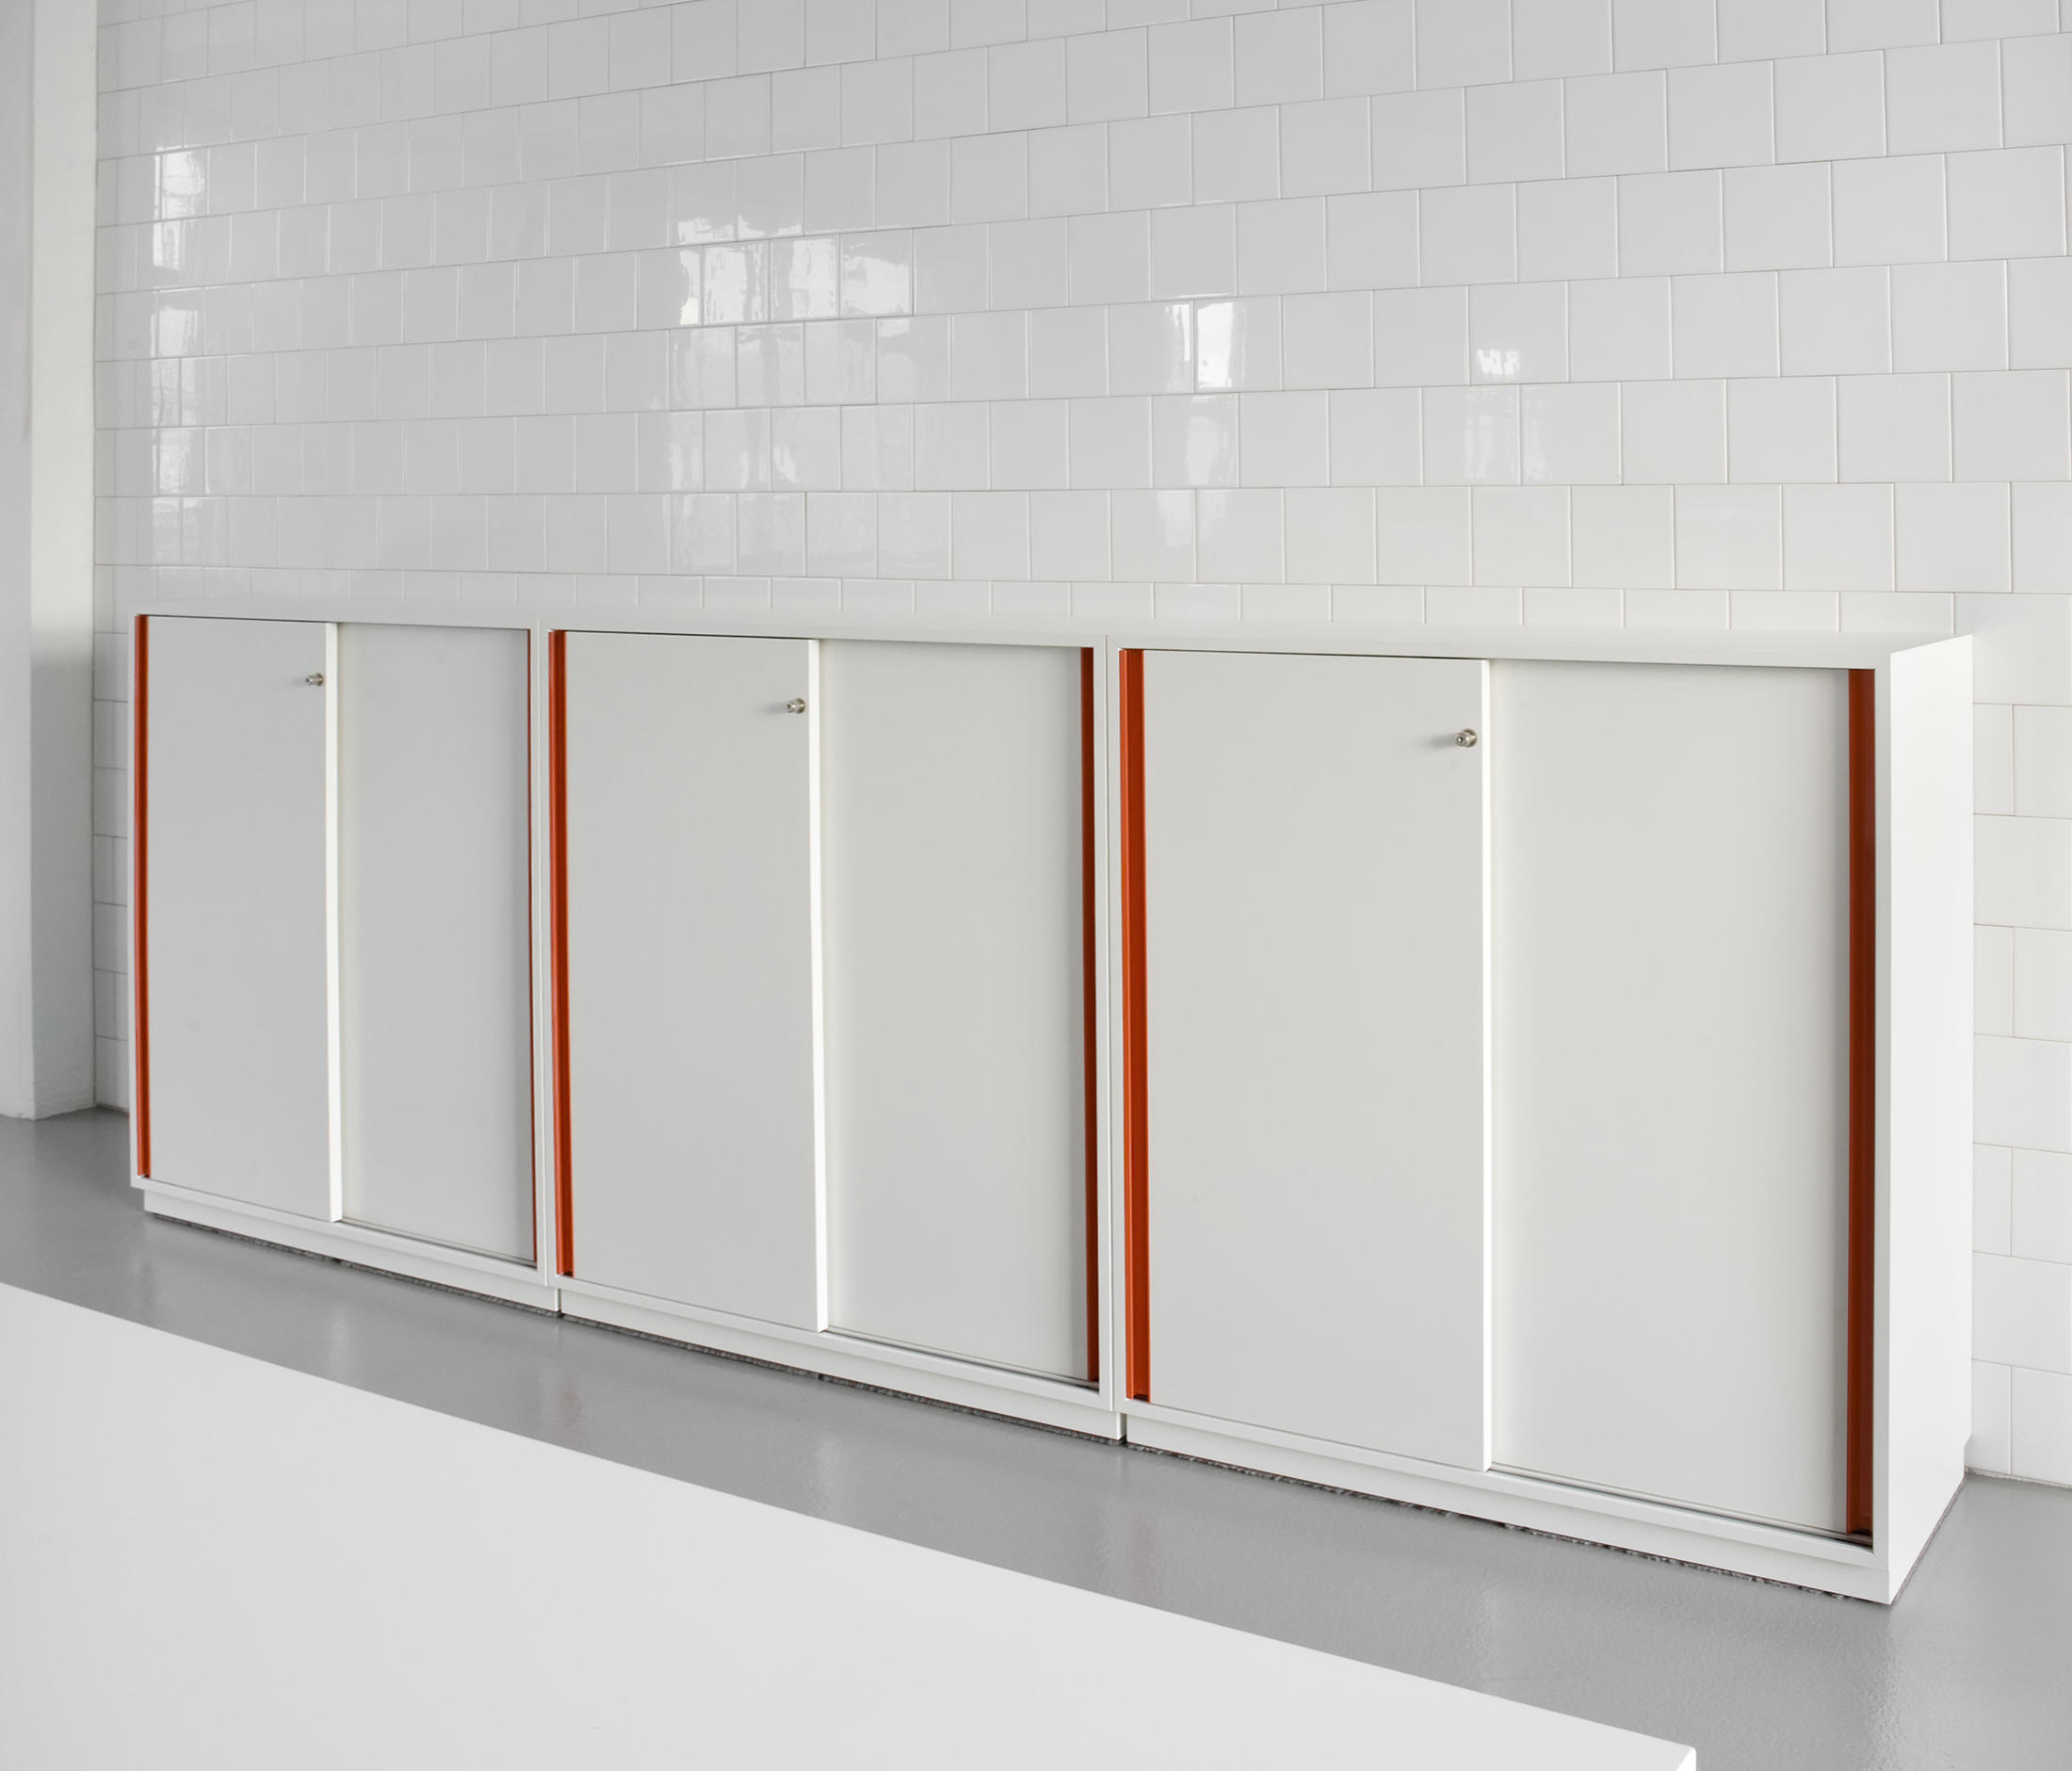 Do4500 sliding door cabinet system cabinets from designoffice do4500 sliding door cabinet system by designoffice cabinets eventshaper